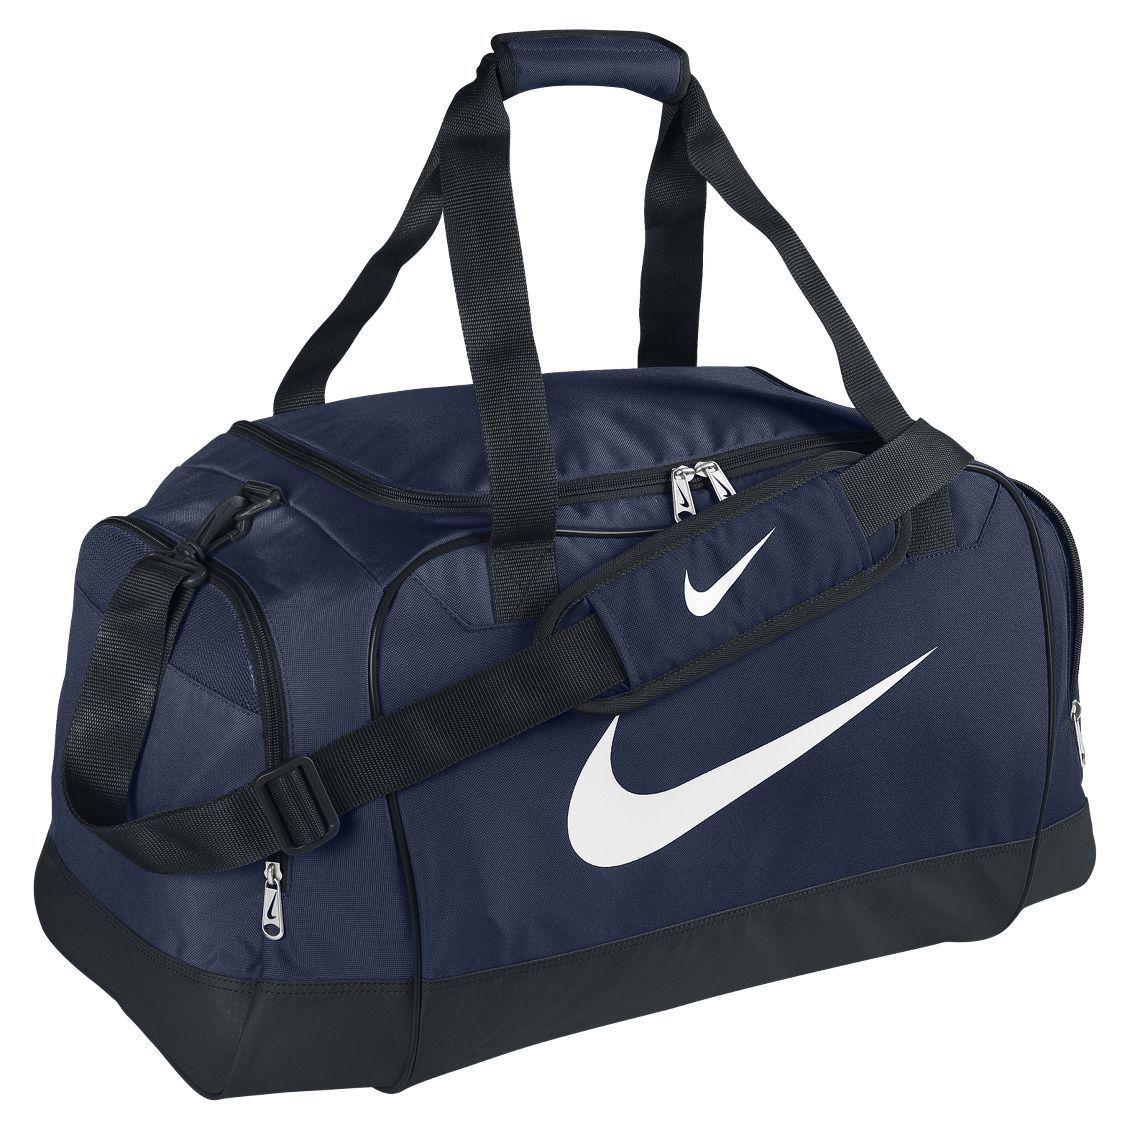 46fbf52c58 Nike Bag Club Team Medium Duffel Personal equipment bag Navy White Soccer Football  Gym Basketball Tennis Duffle Bags NEW BA3251-472